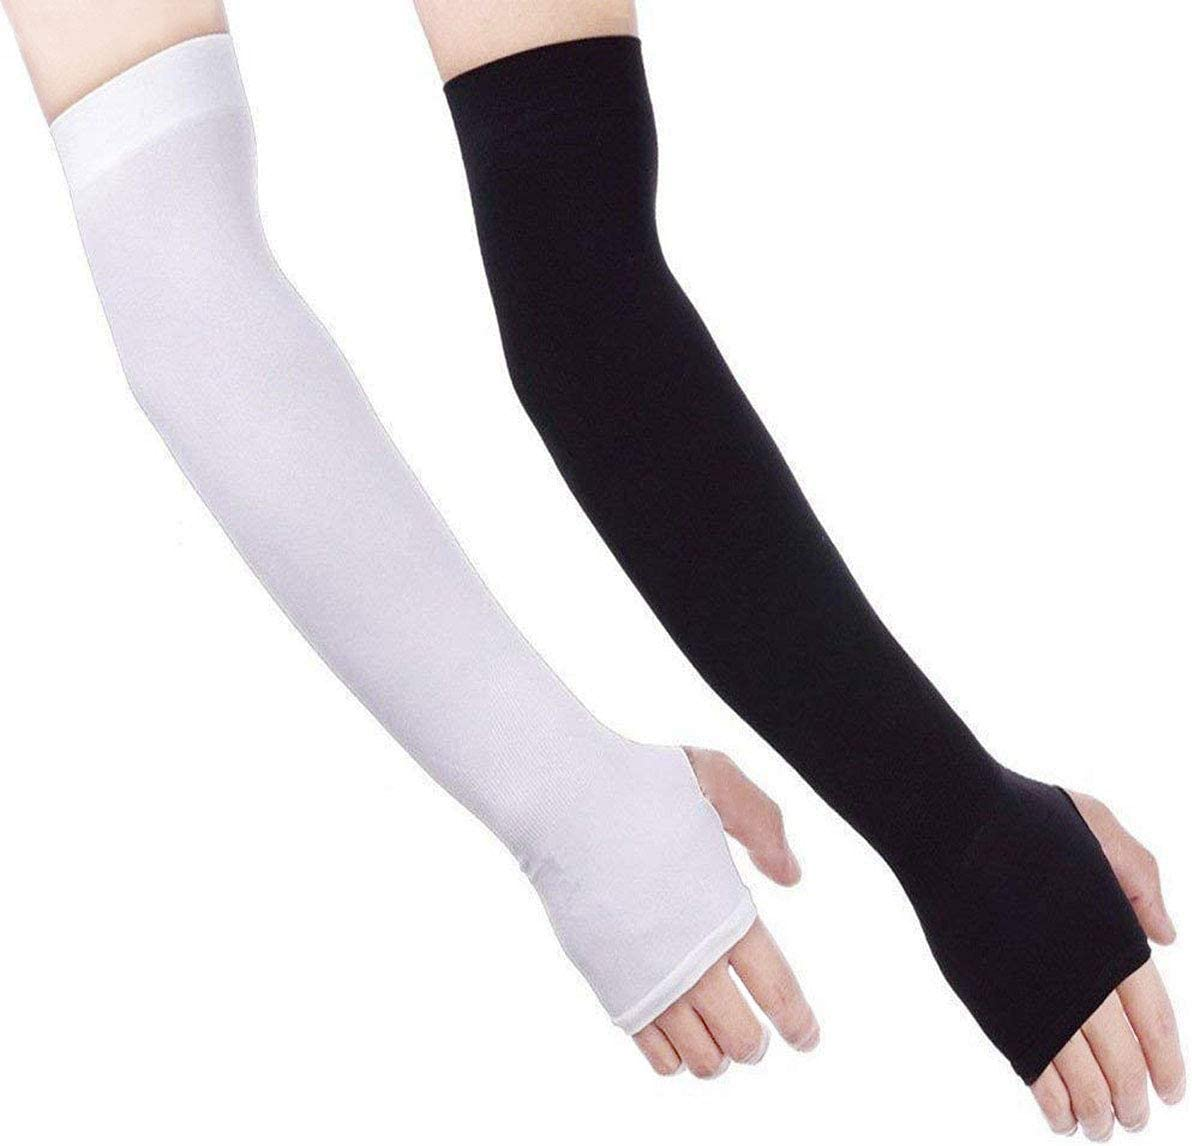 Compression Women Running Sport Arm Protective Sleeves Cut Heat Resistant Sleeve